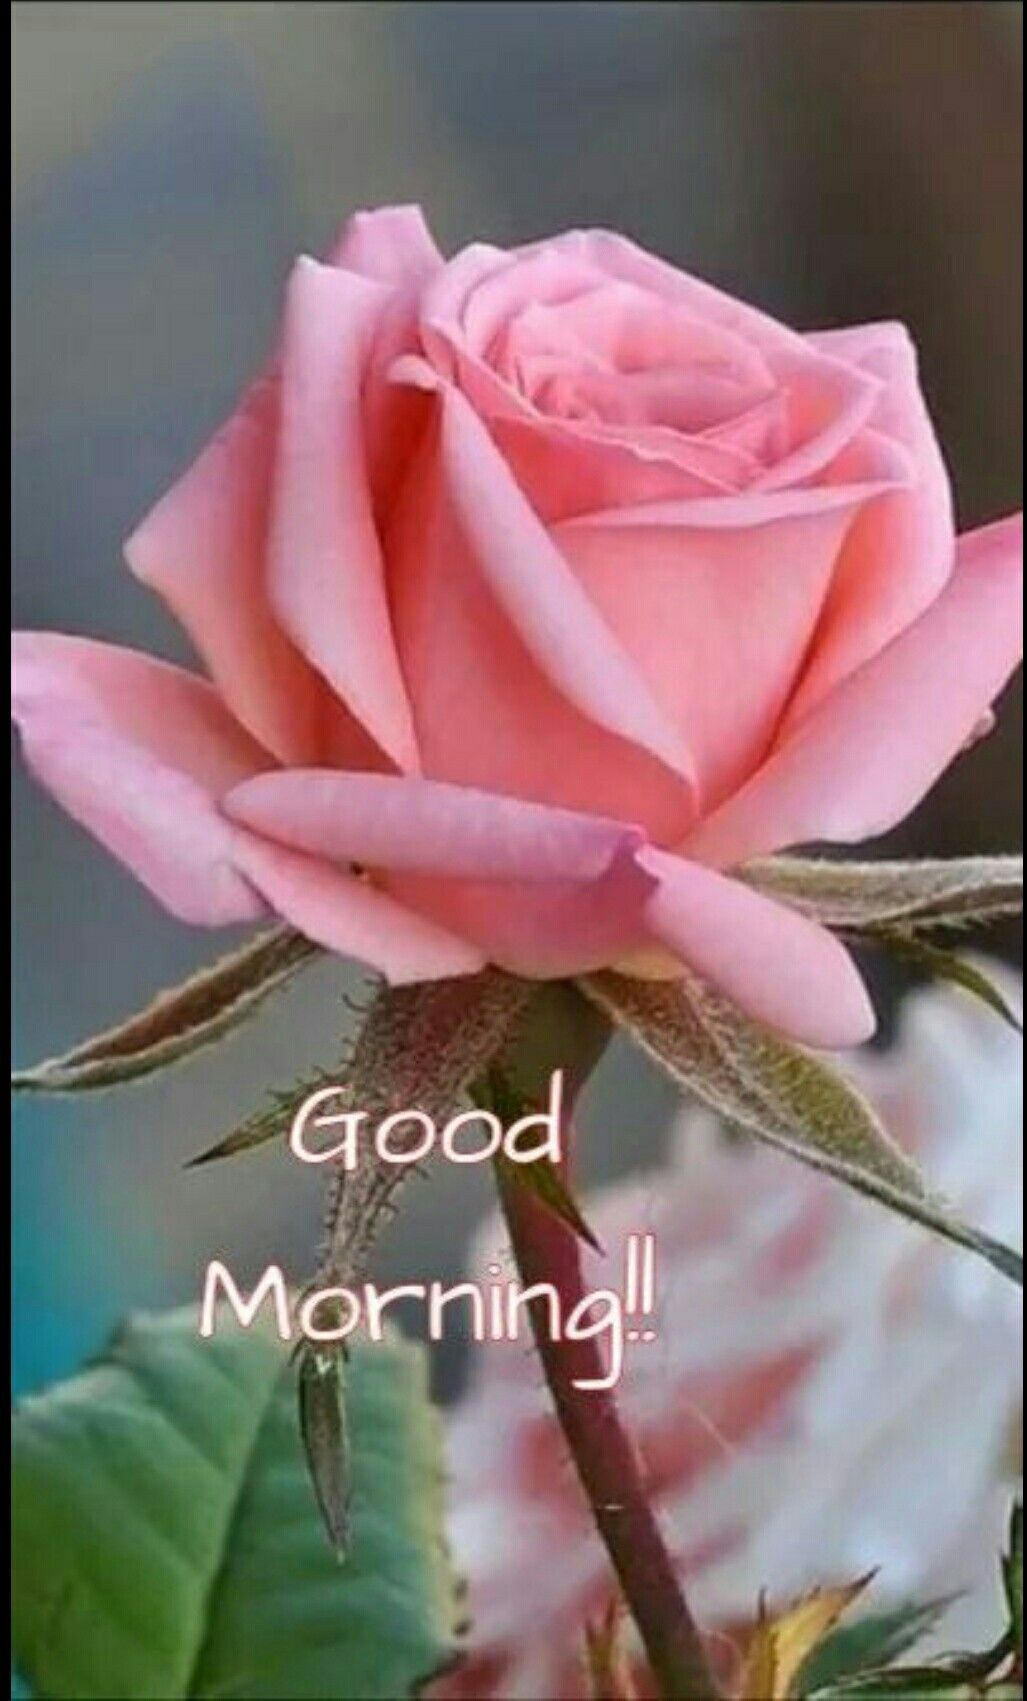 Pin by ann on pinterest morning images pin by ann on pinterest morning images morning greetings quotes and morning qoutes izmirmasajfo